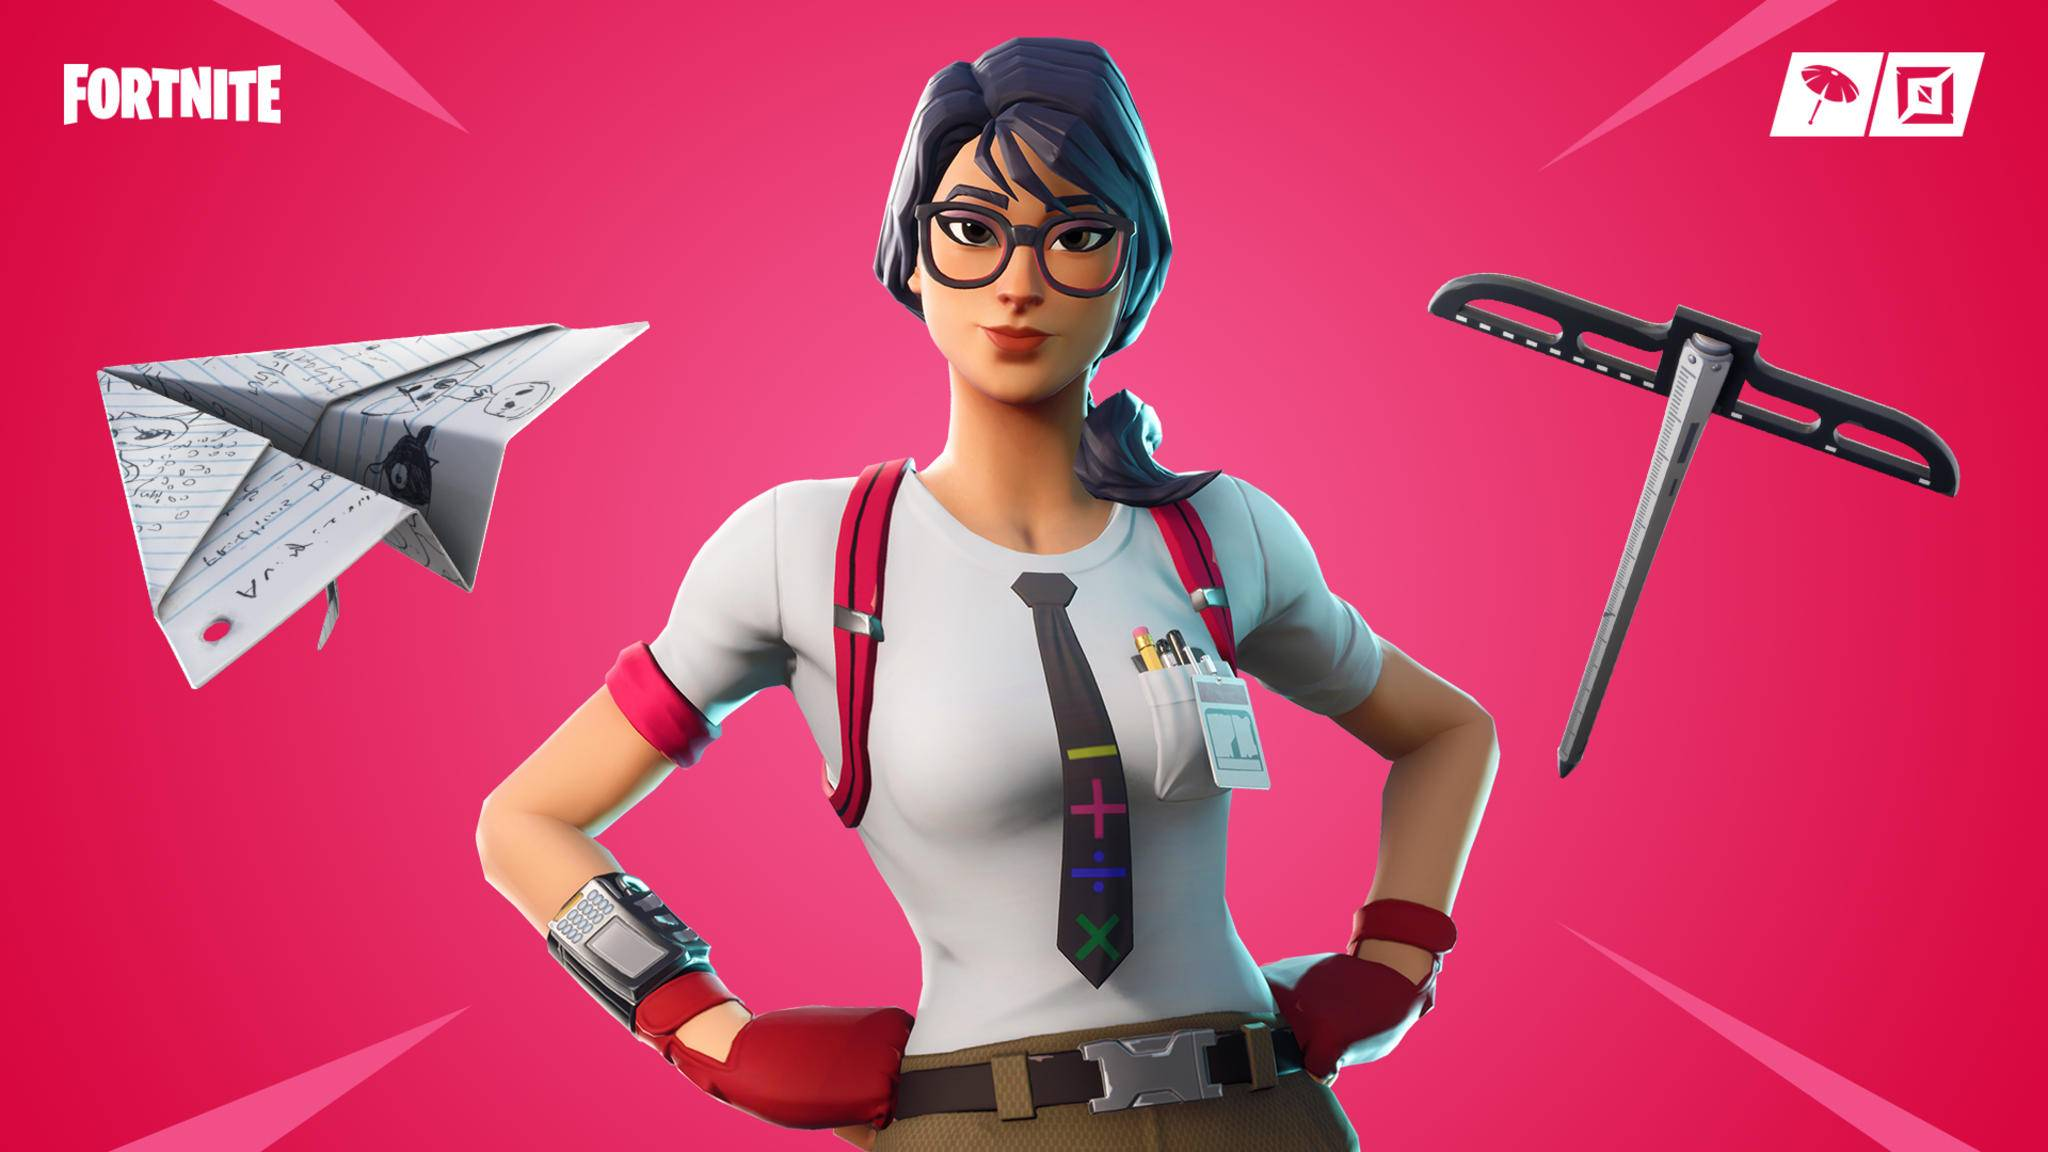 fortnite lose diese herausforderungen der battle pass ist gratis - fortnite battle pass umsonst